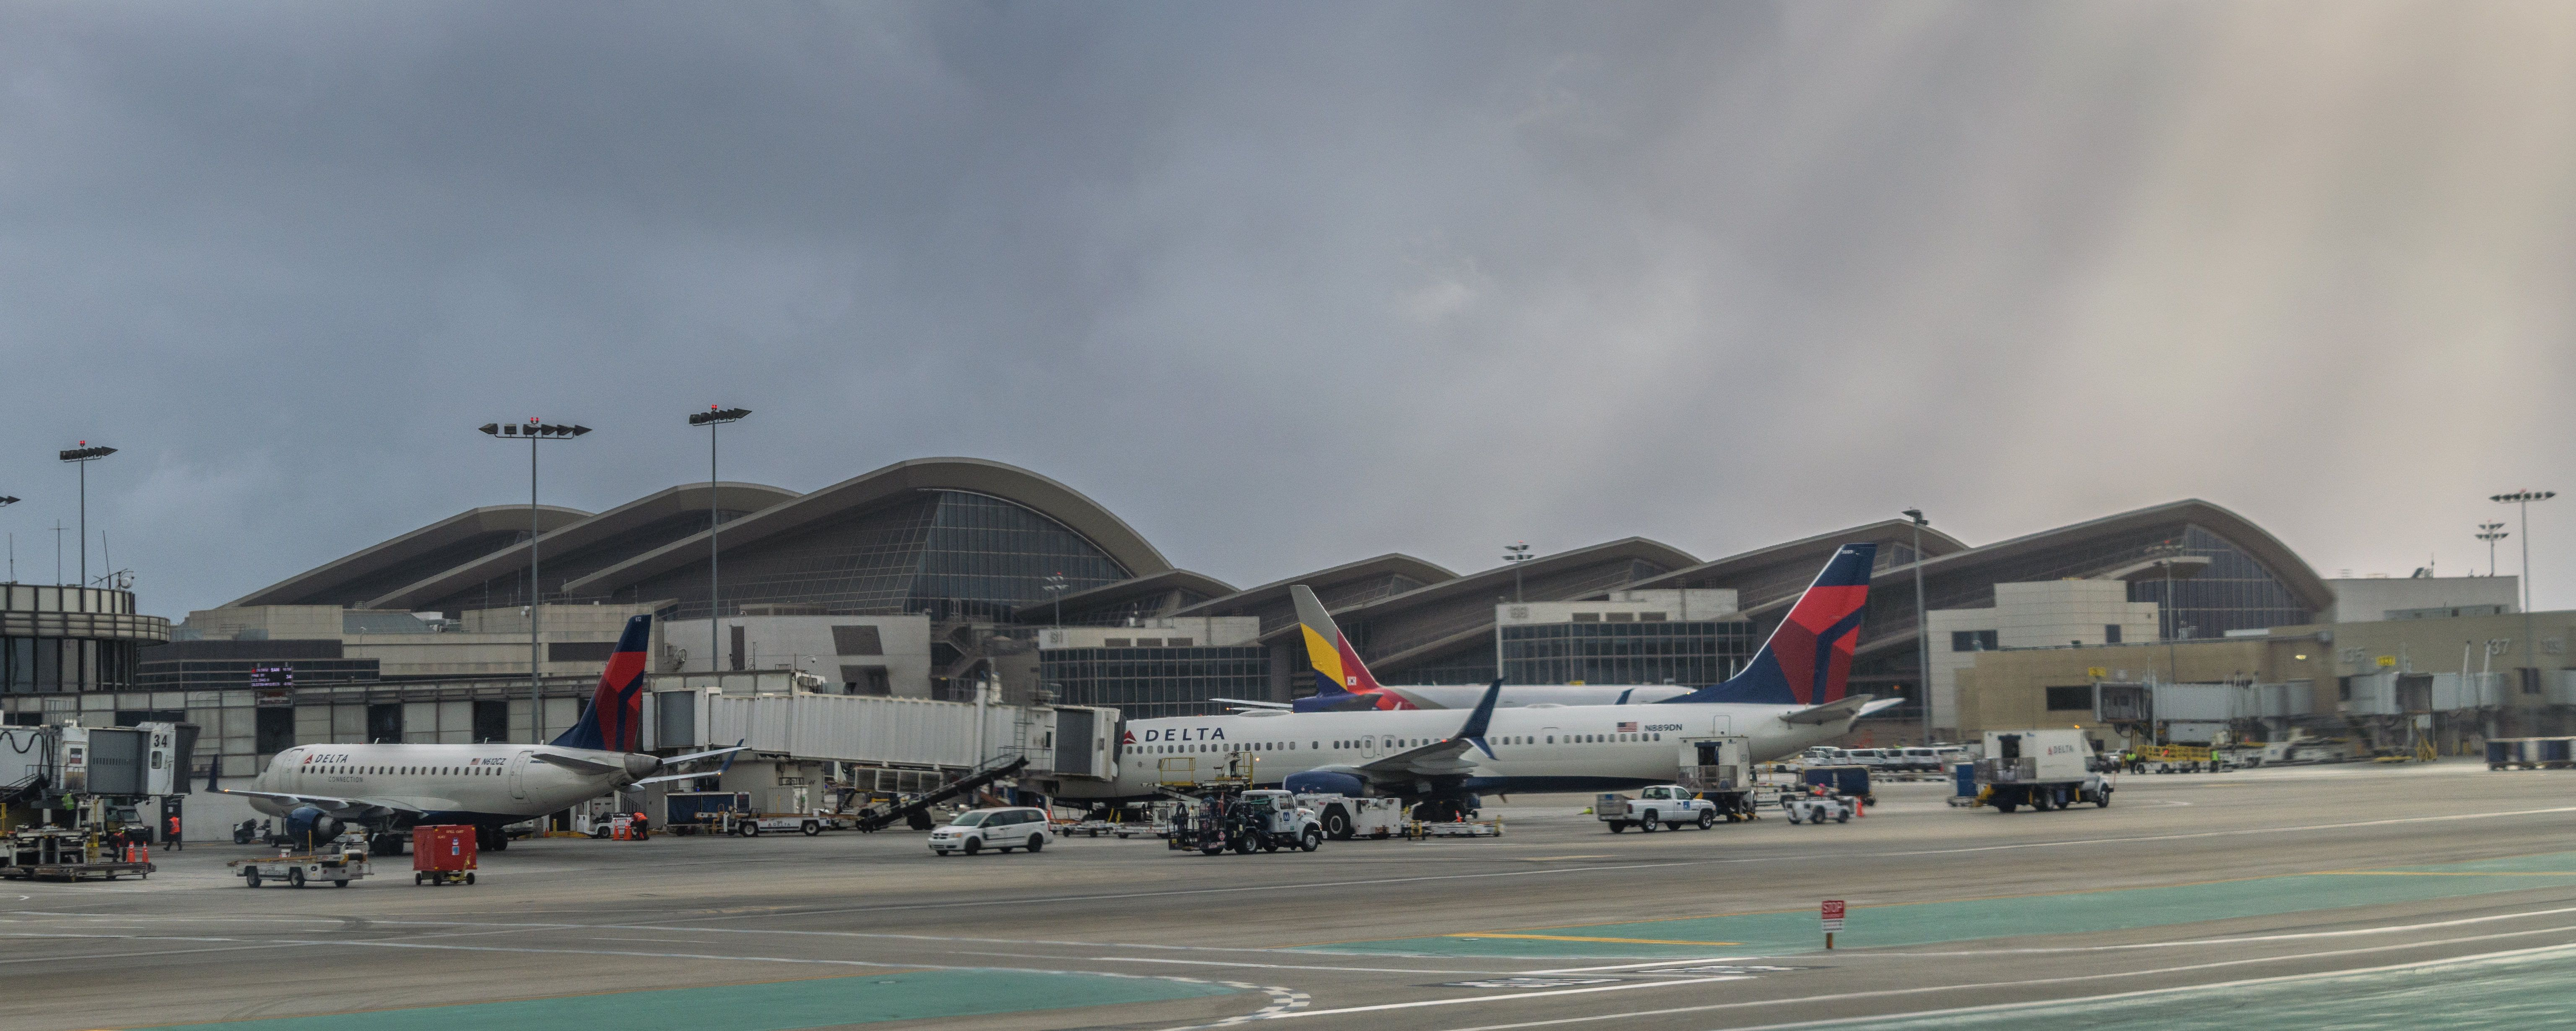 Delta B739 Lax In 2020 Delta Airlines Los Angeles International Airport Airports Terminal